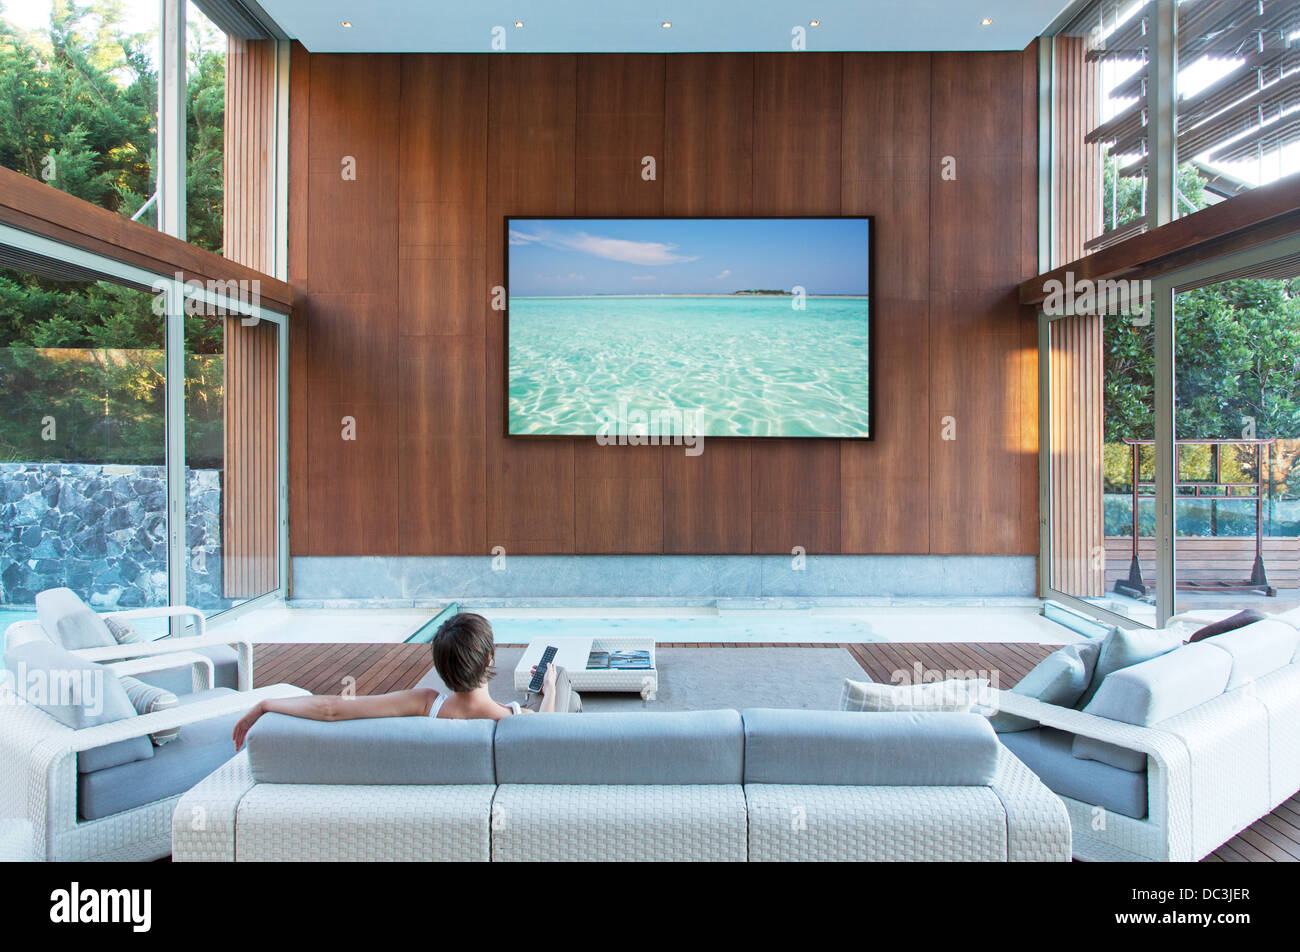 Woman Watching Large Flat Screen Tv In Modern Living Room Stock Photo Alamy